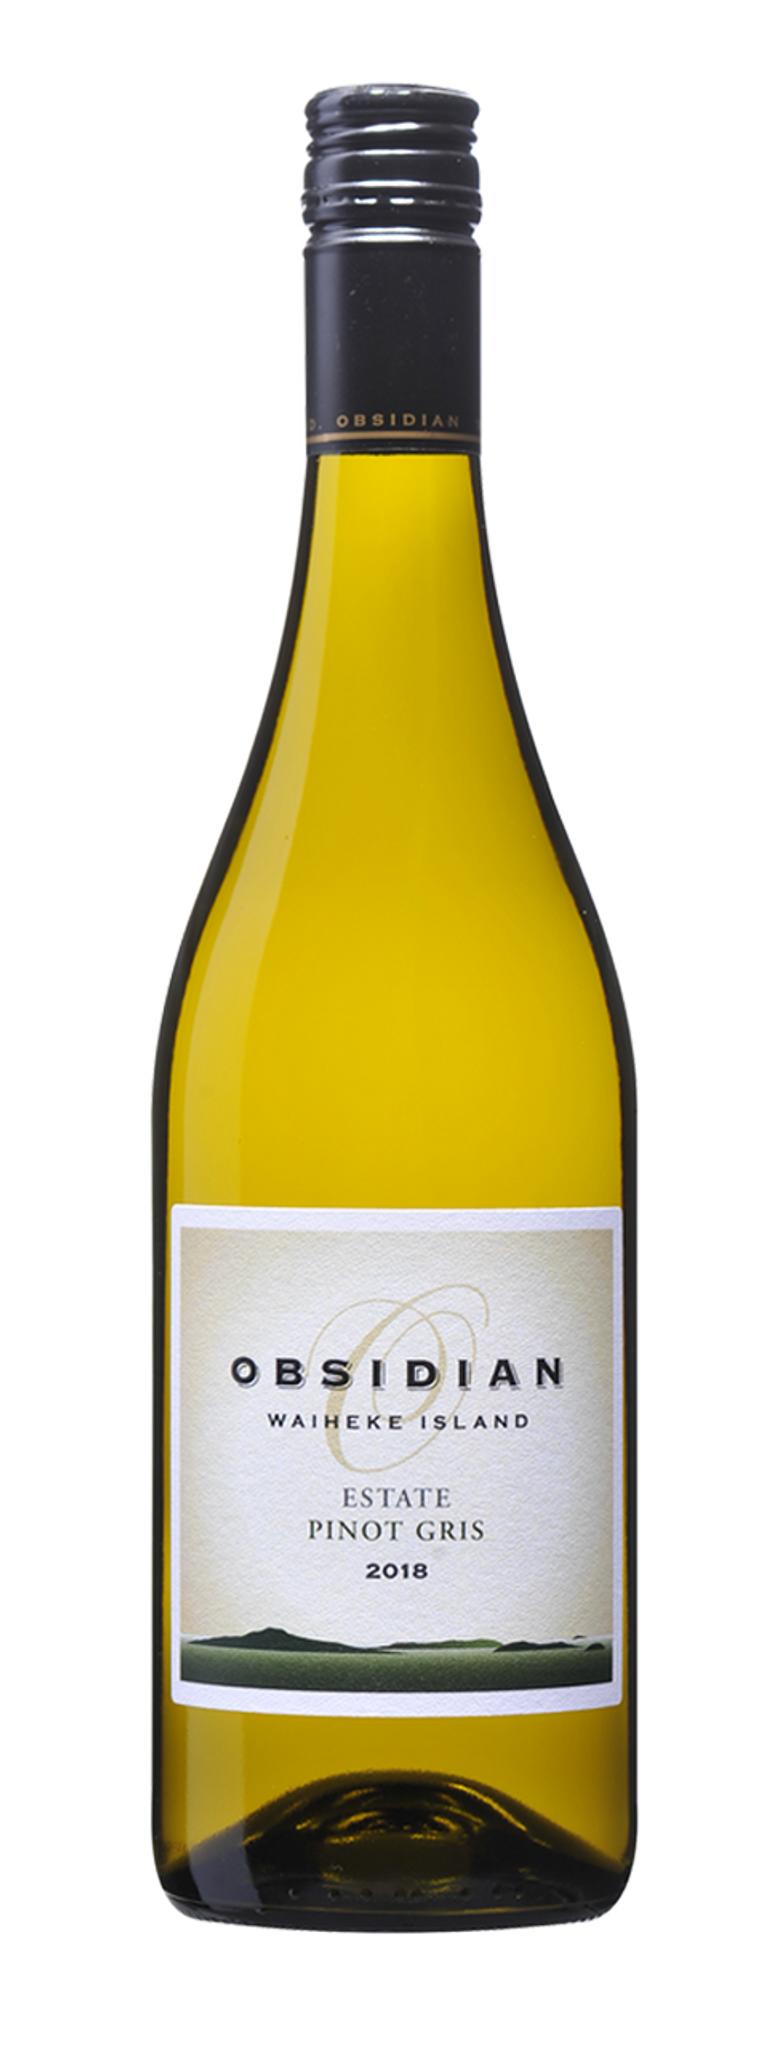 Obsidian Pinot Gris 2018